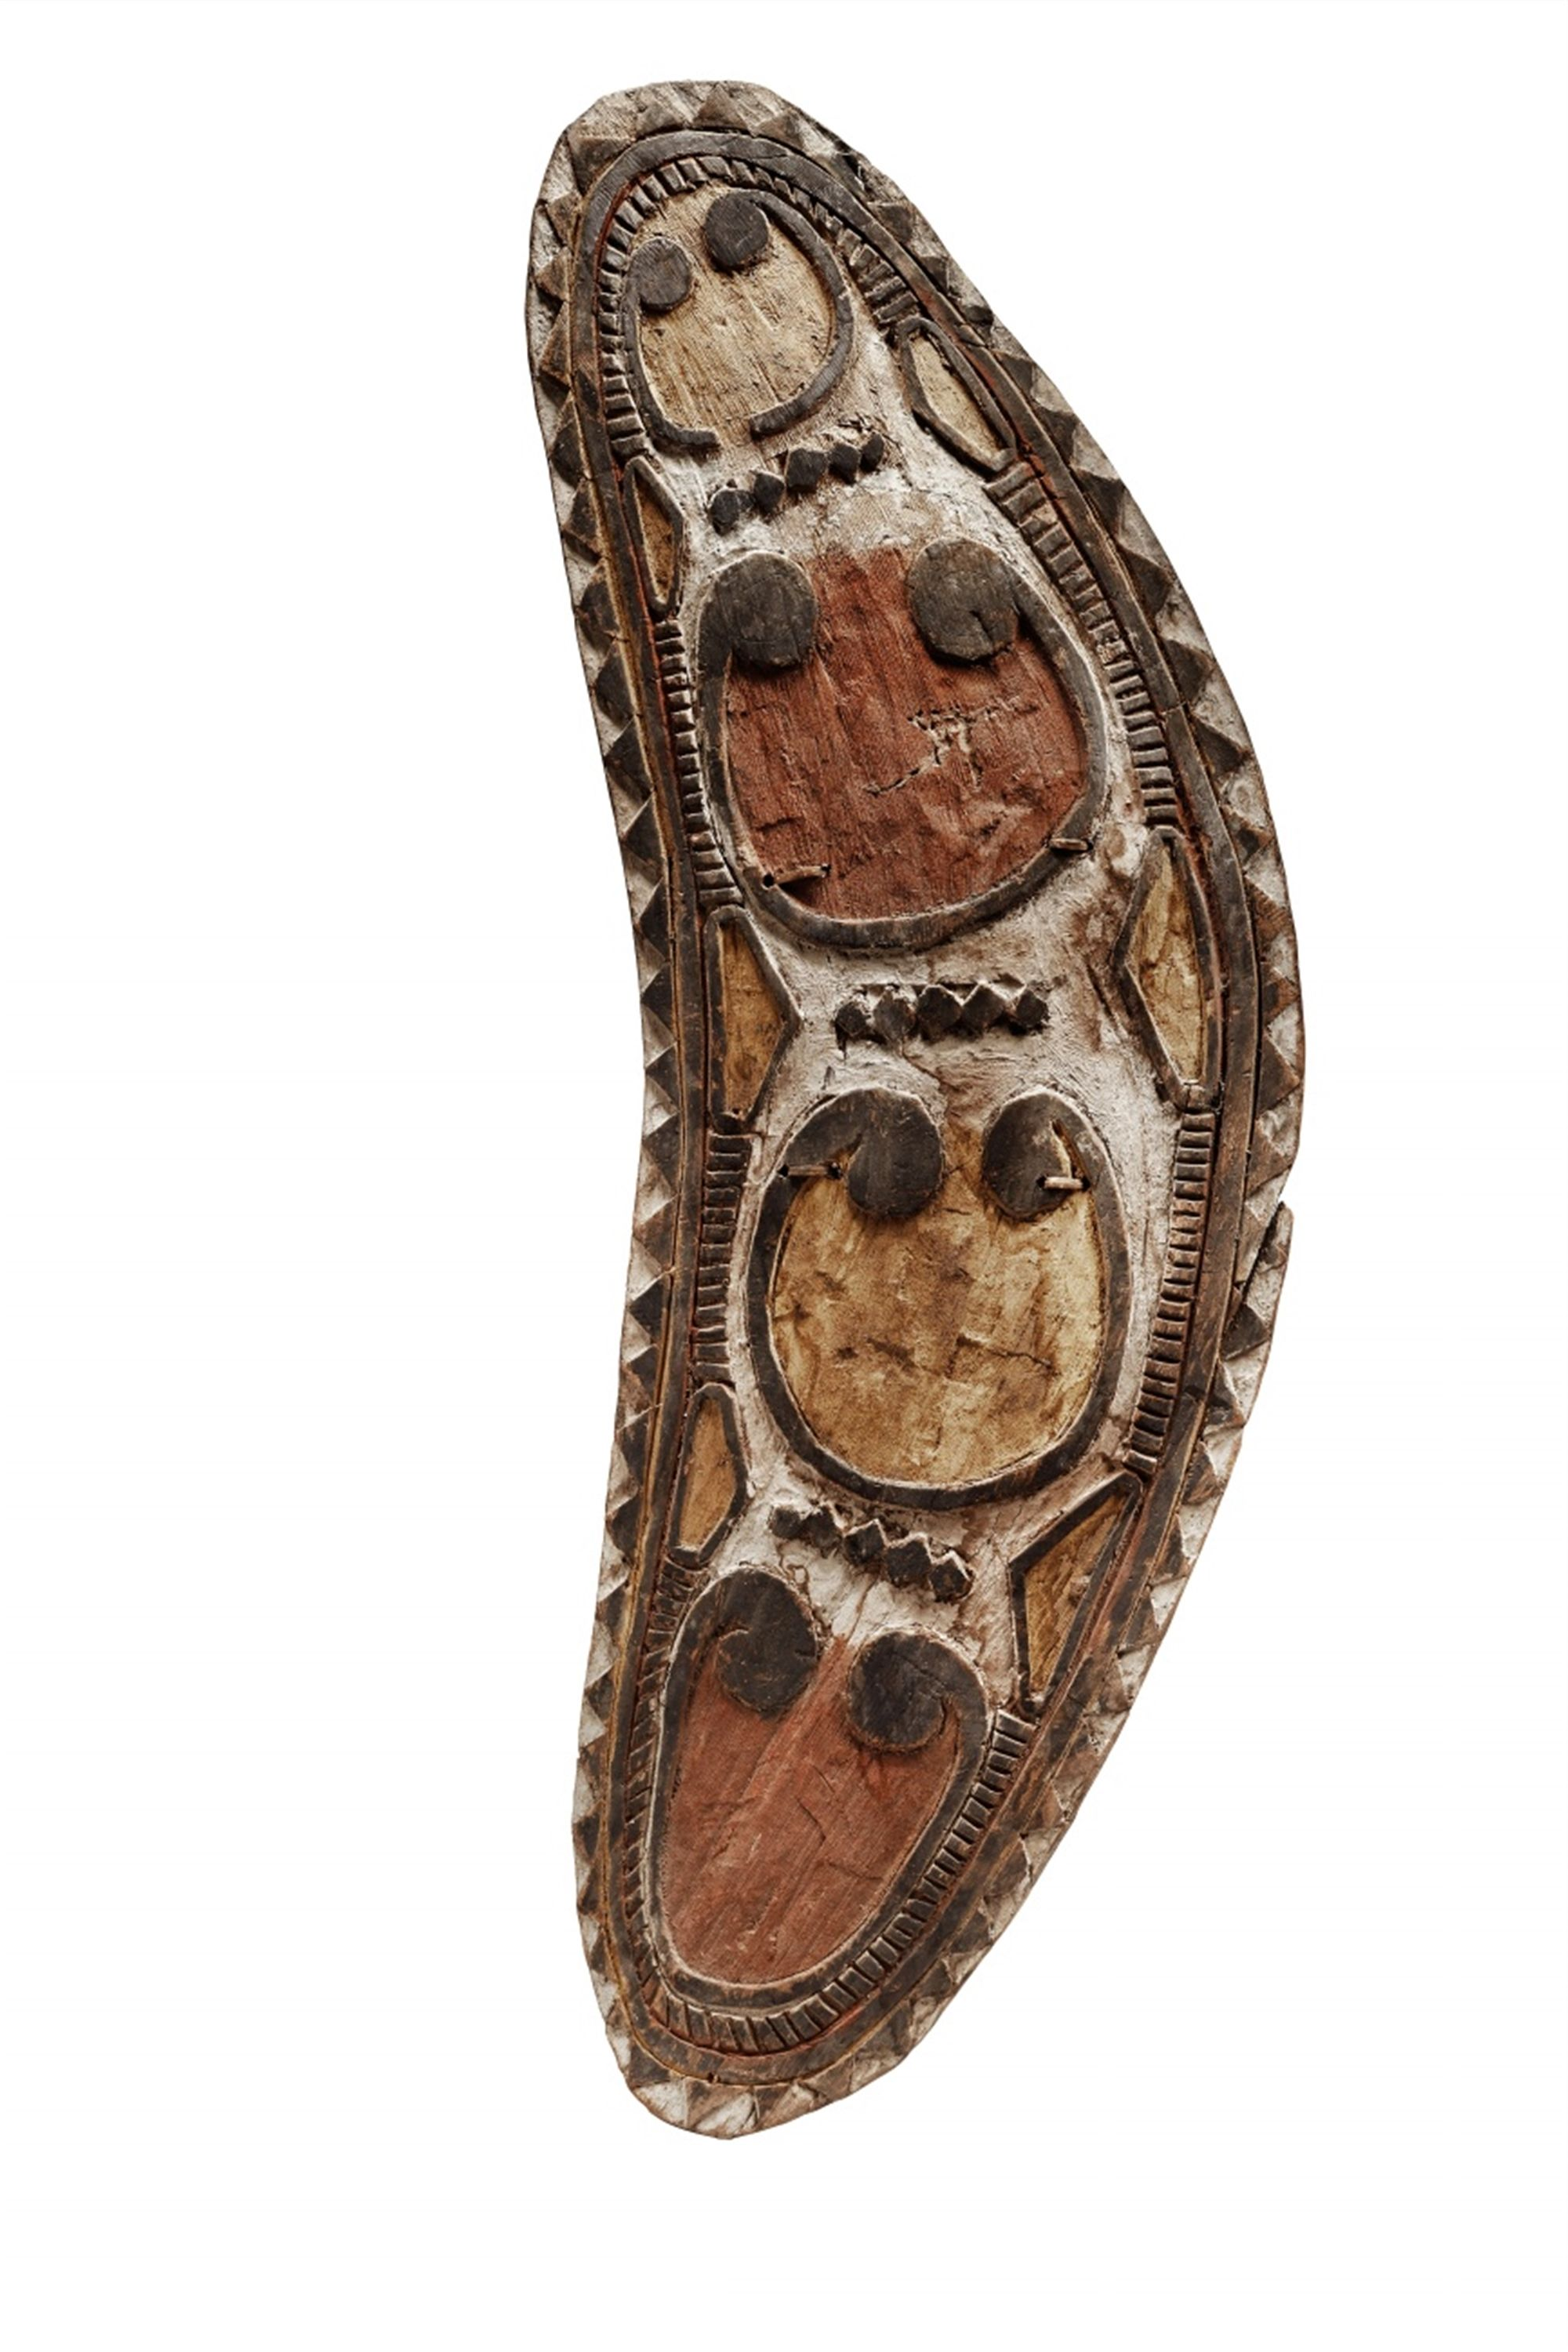 Papua New GuineaEAST SEPIK RIVER SHIELD, Auction 1073 African and Oceanic Art, Lot 85